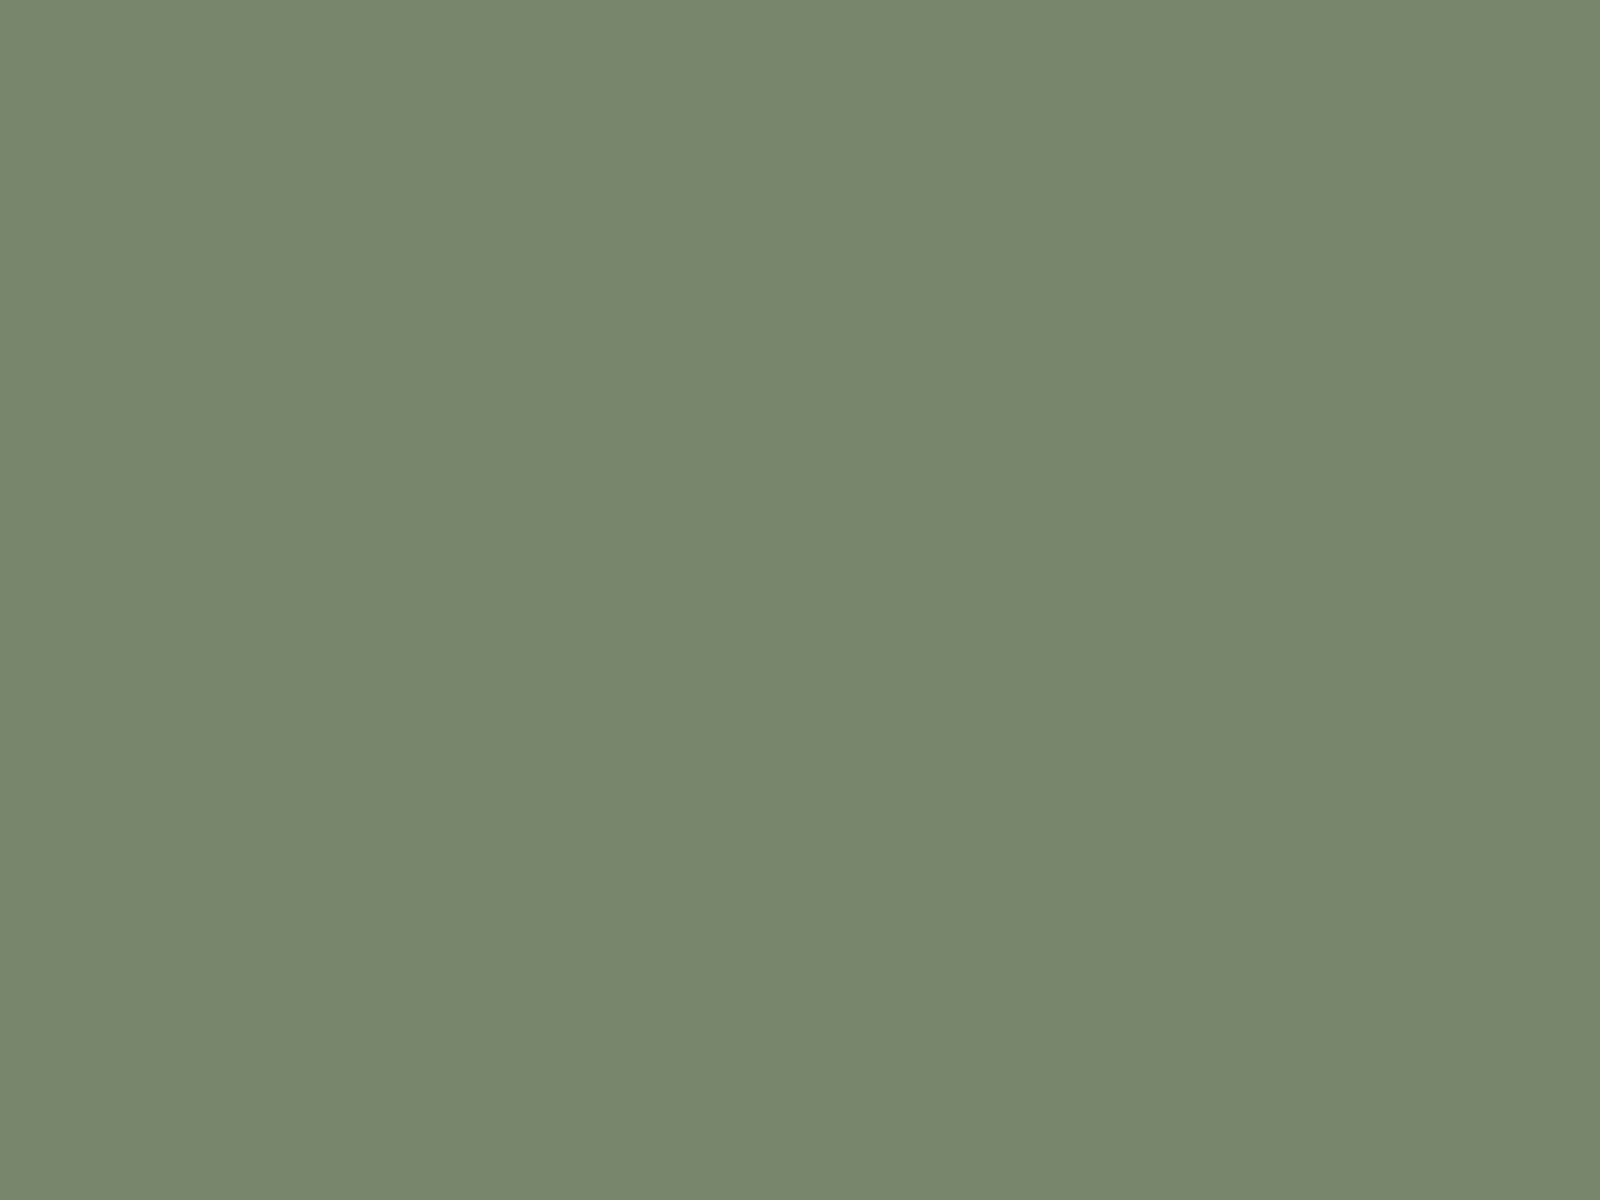 1600x1200 Camouflage Green Solid Color Background